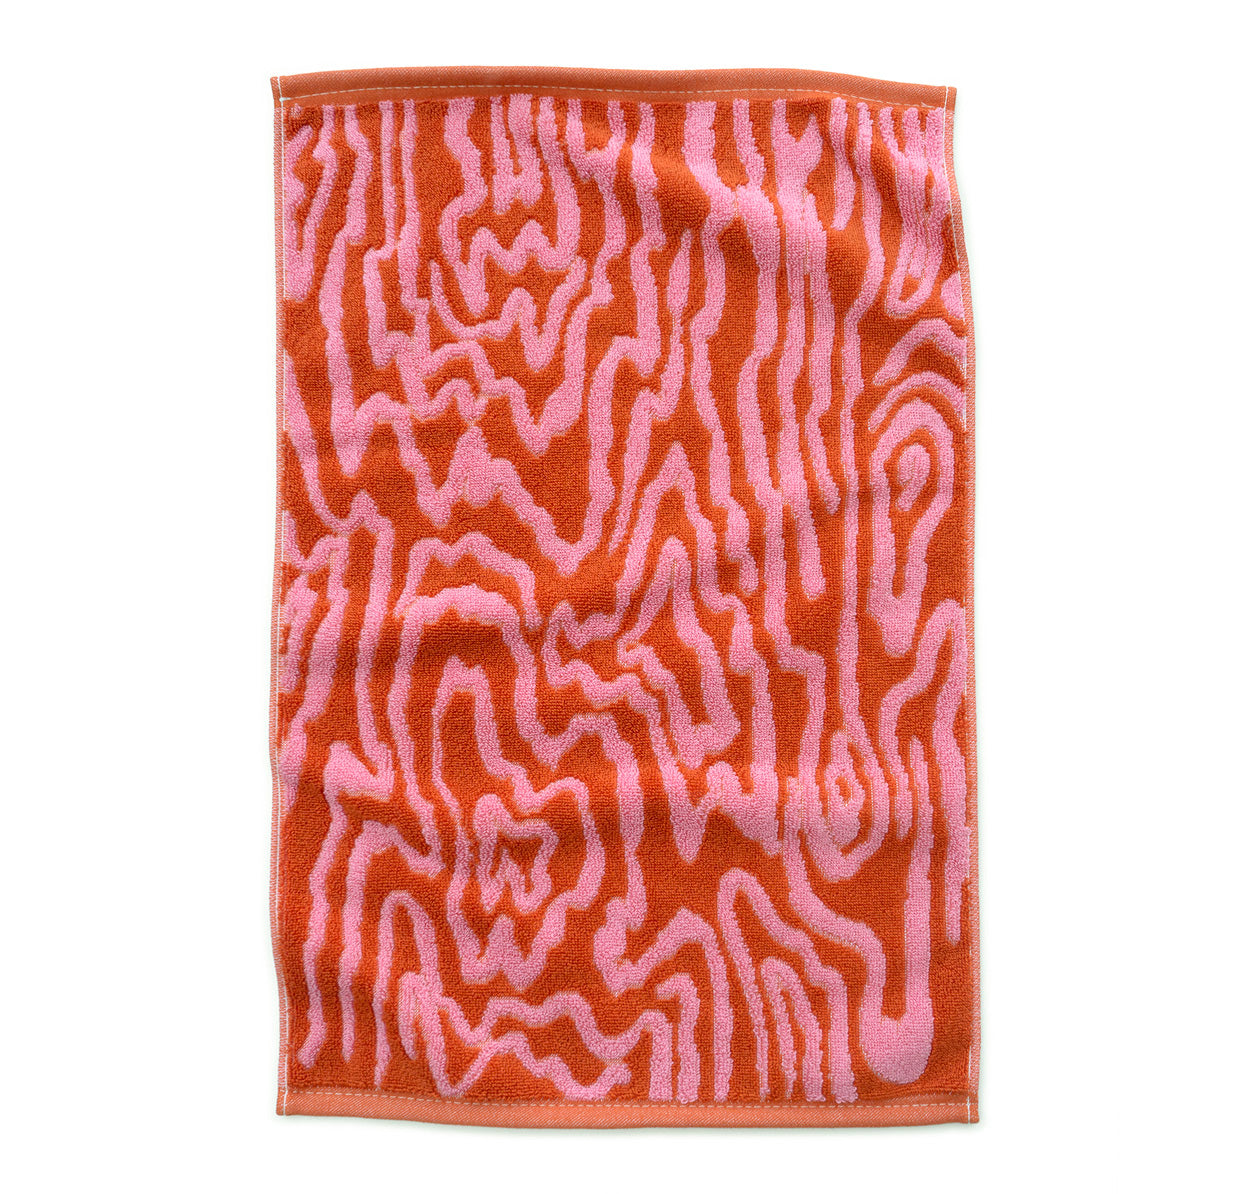 Woodgrain Hand Towel